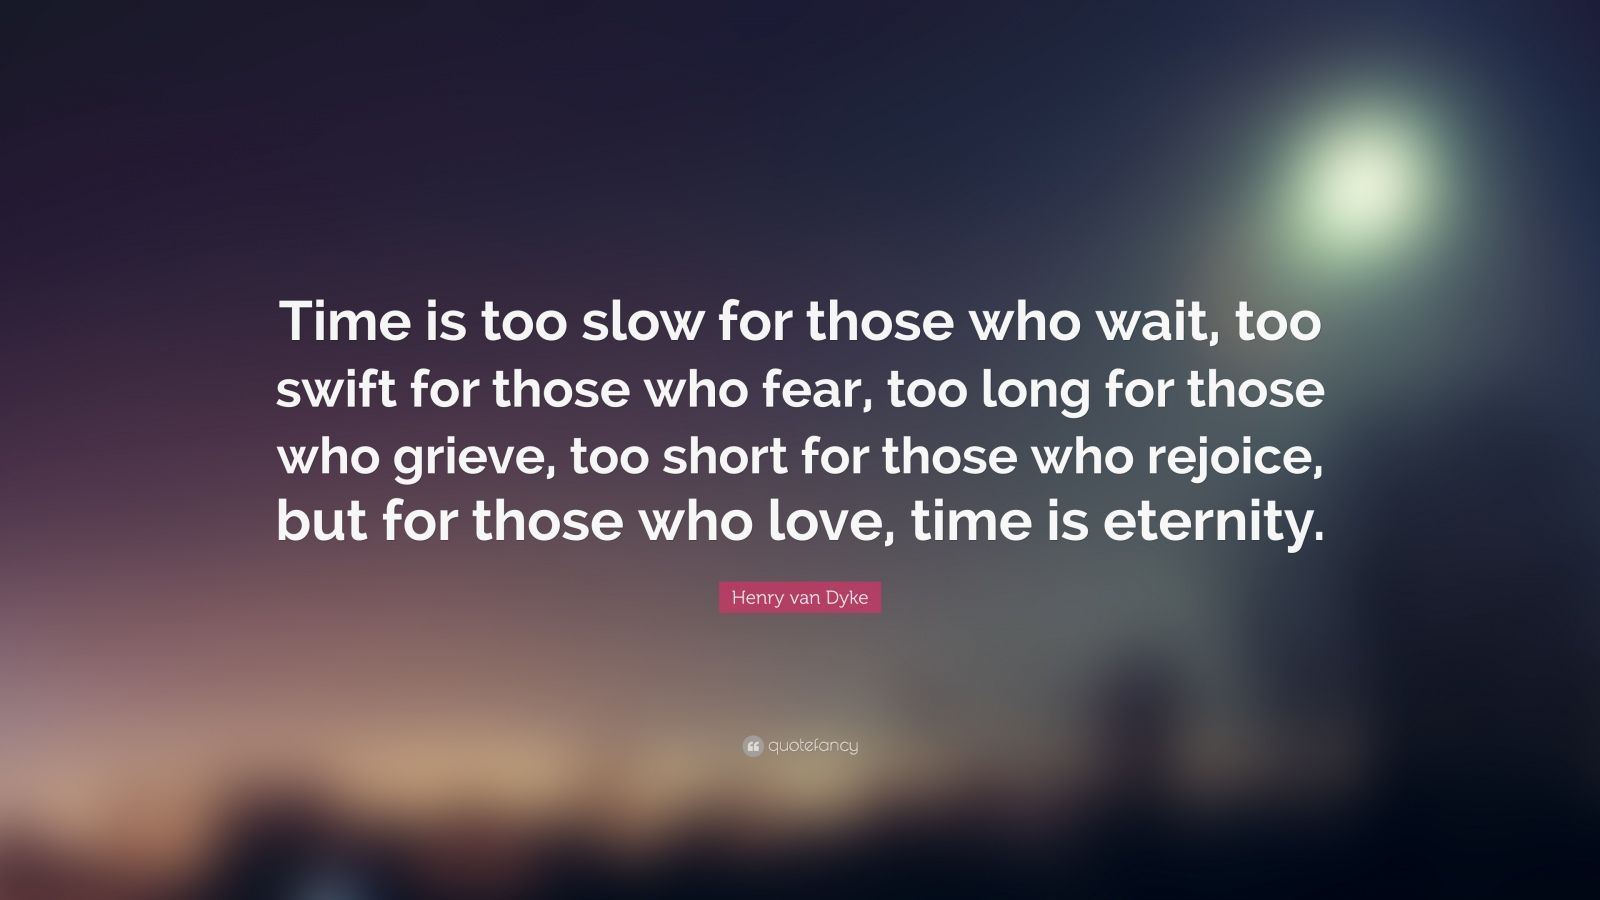 """Henry van Dyke Quote: """"Time is too slow for those who wait, too swift for those who fear, too long for those who grieve, too short for those who rejoice, but for those who love, time is eternity."""""""